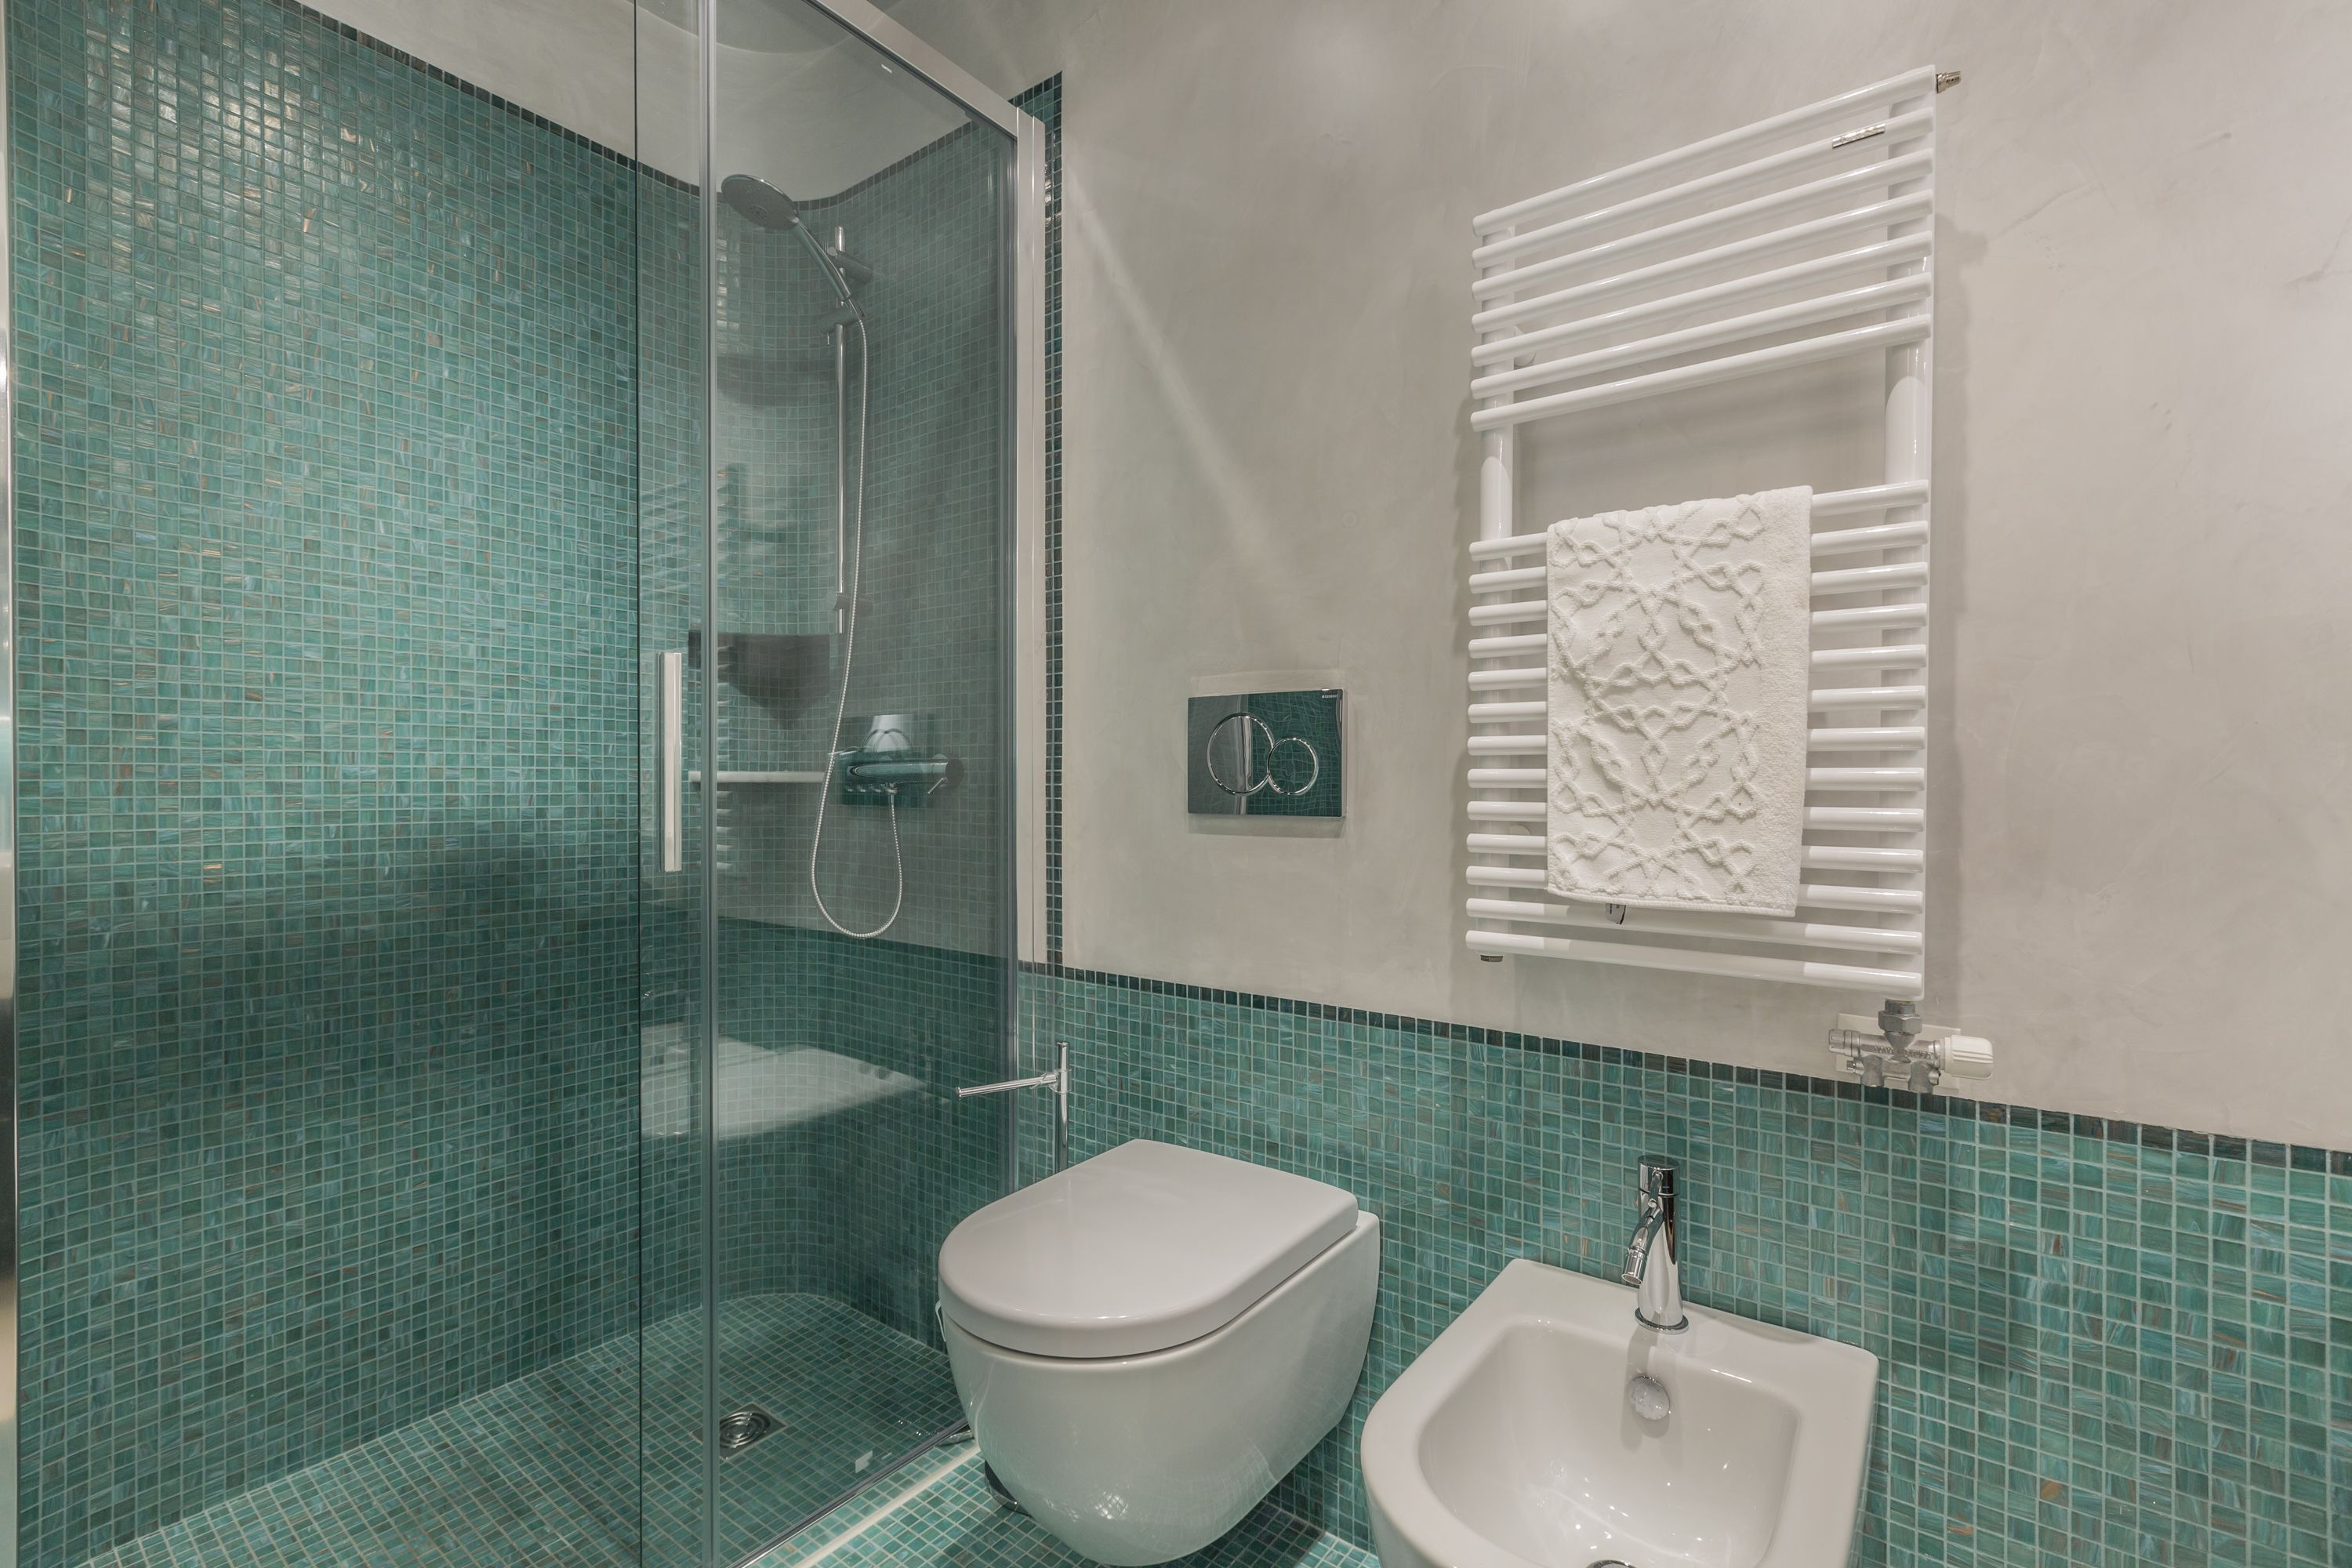 the second bathroom has a large shower box